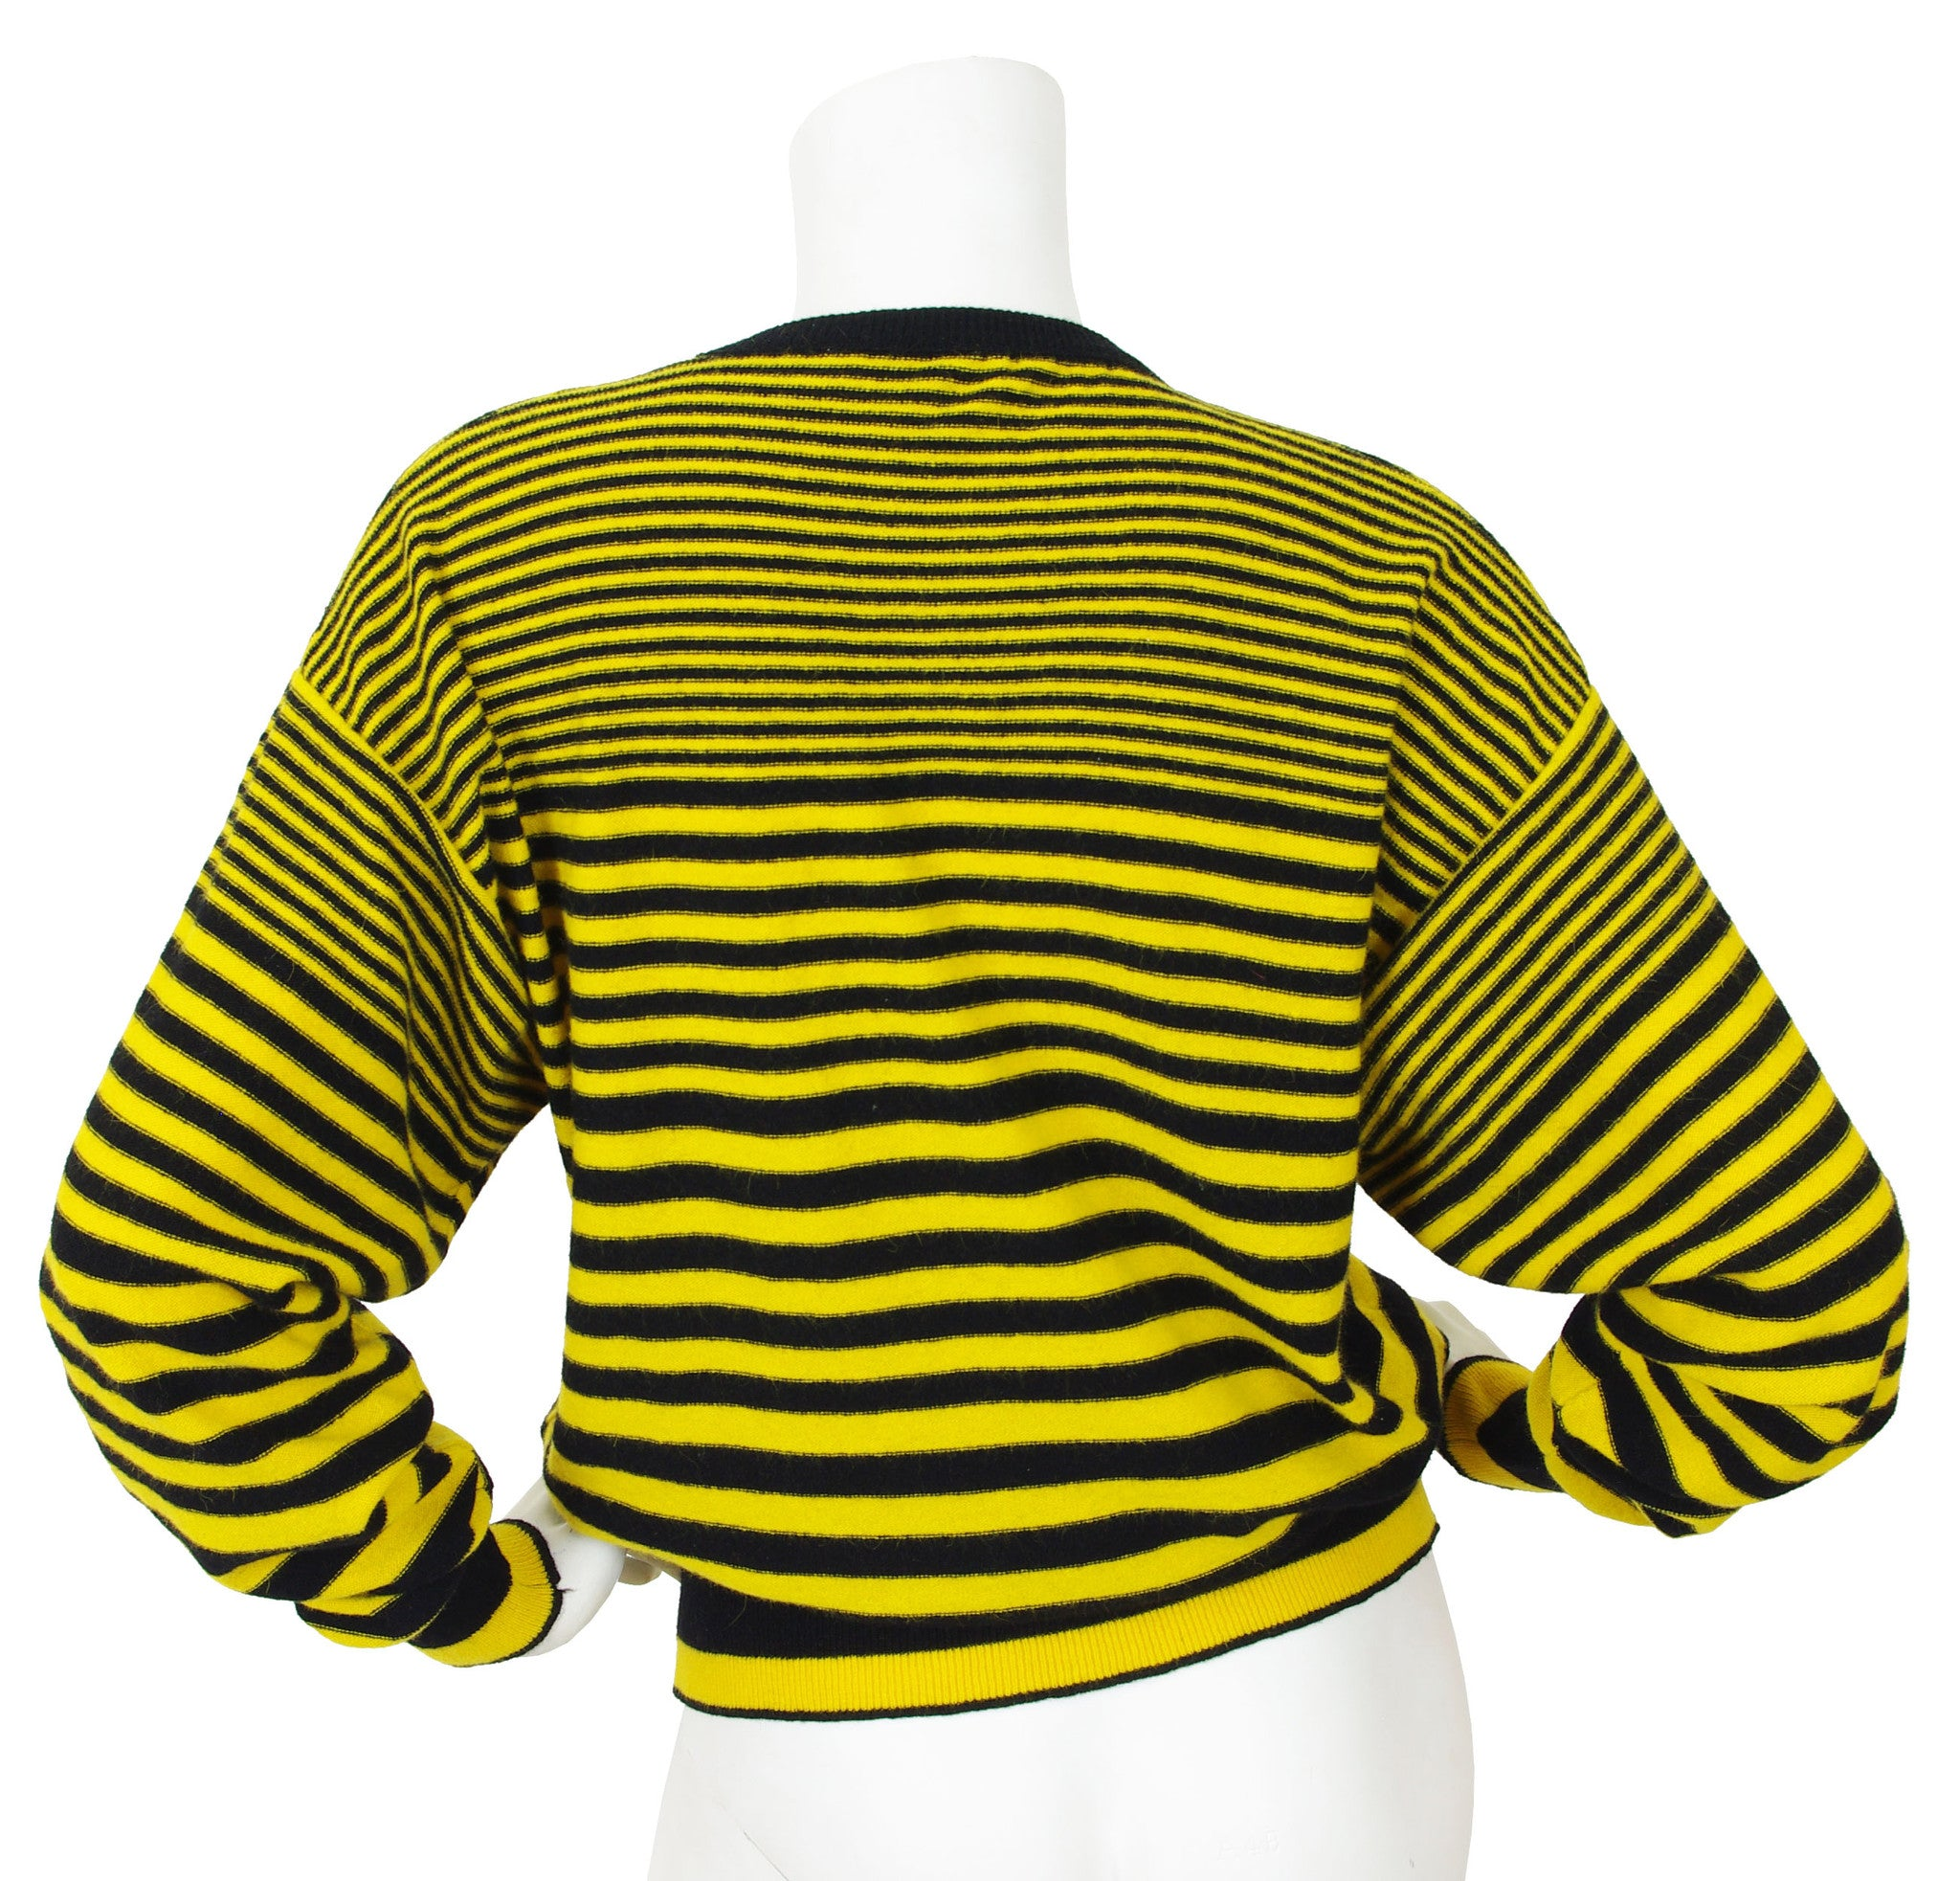 1980's Yellow and Black Striped Wool Dolman Sleeve Sweater